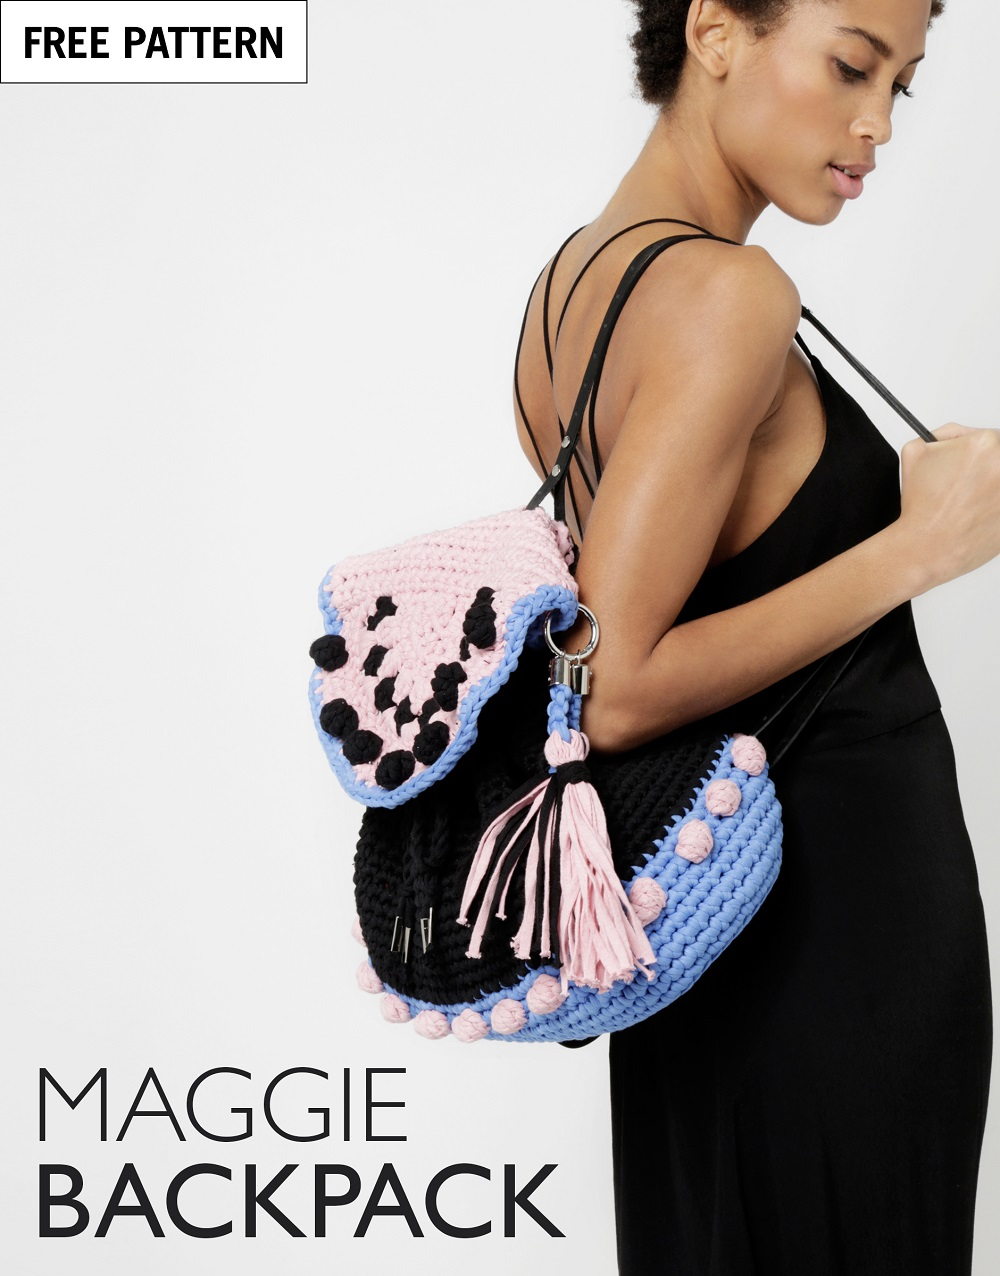 Free pattern index maggie backpack